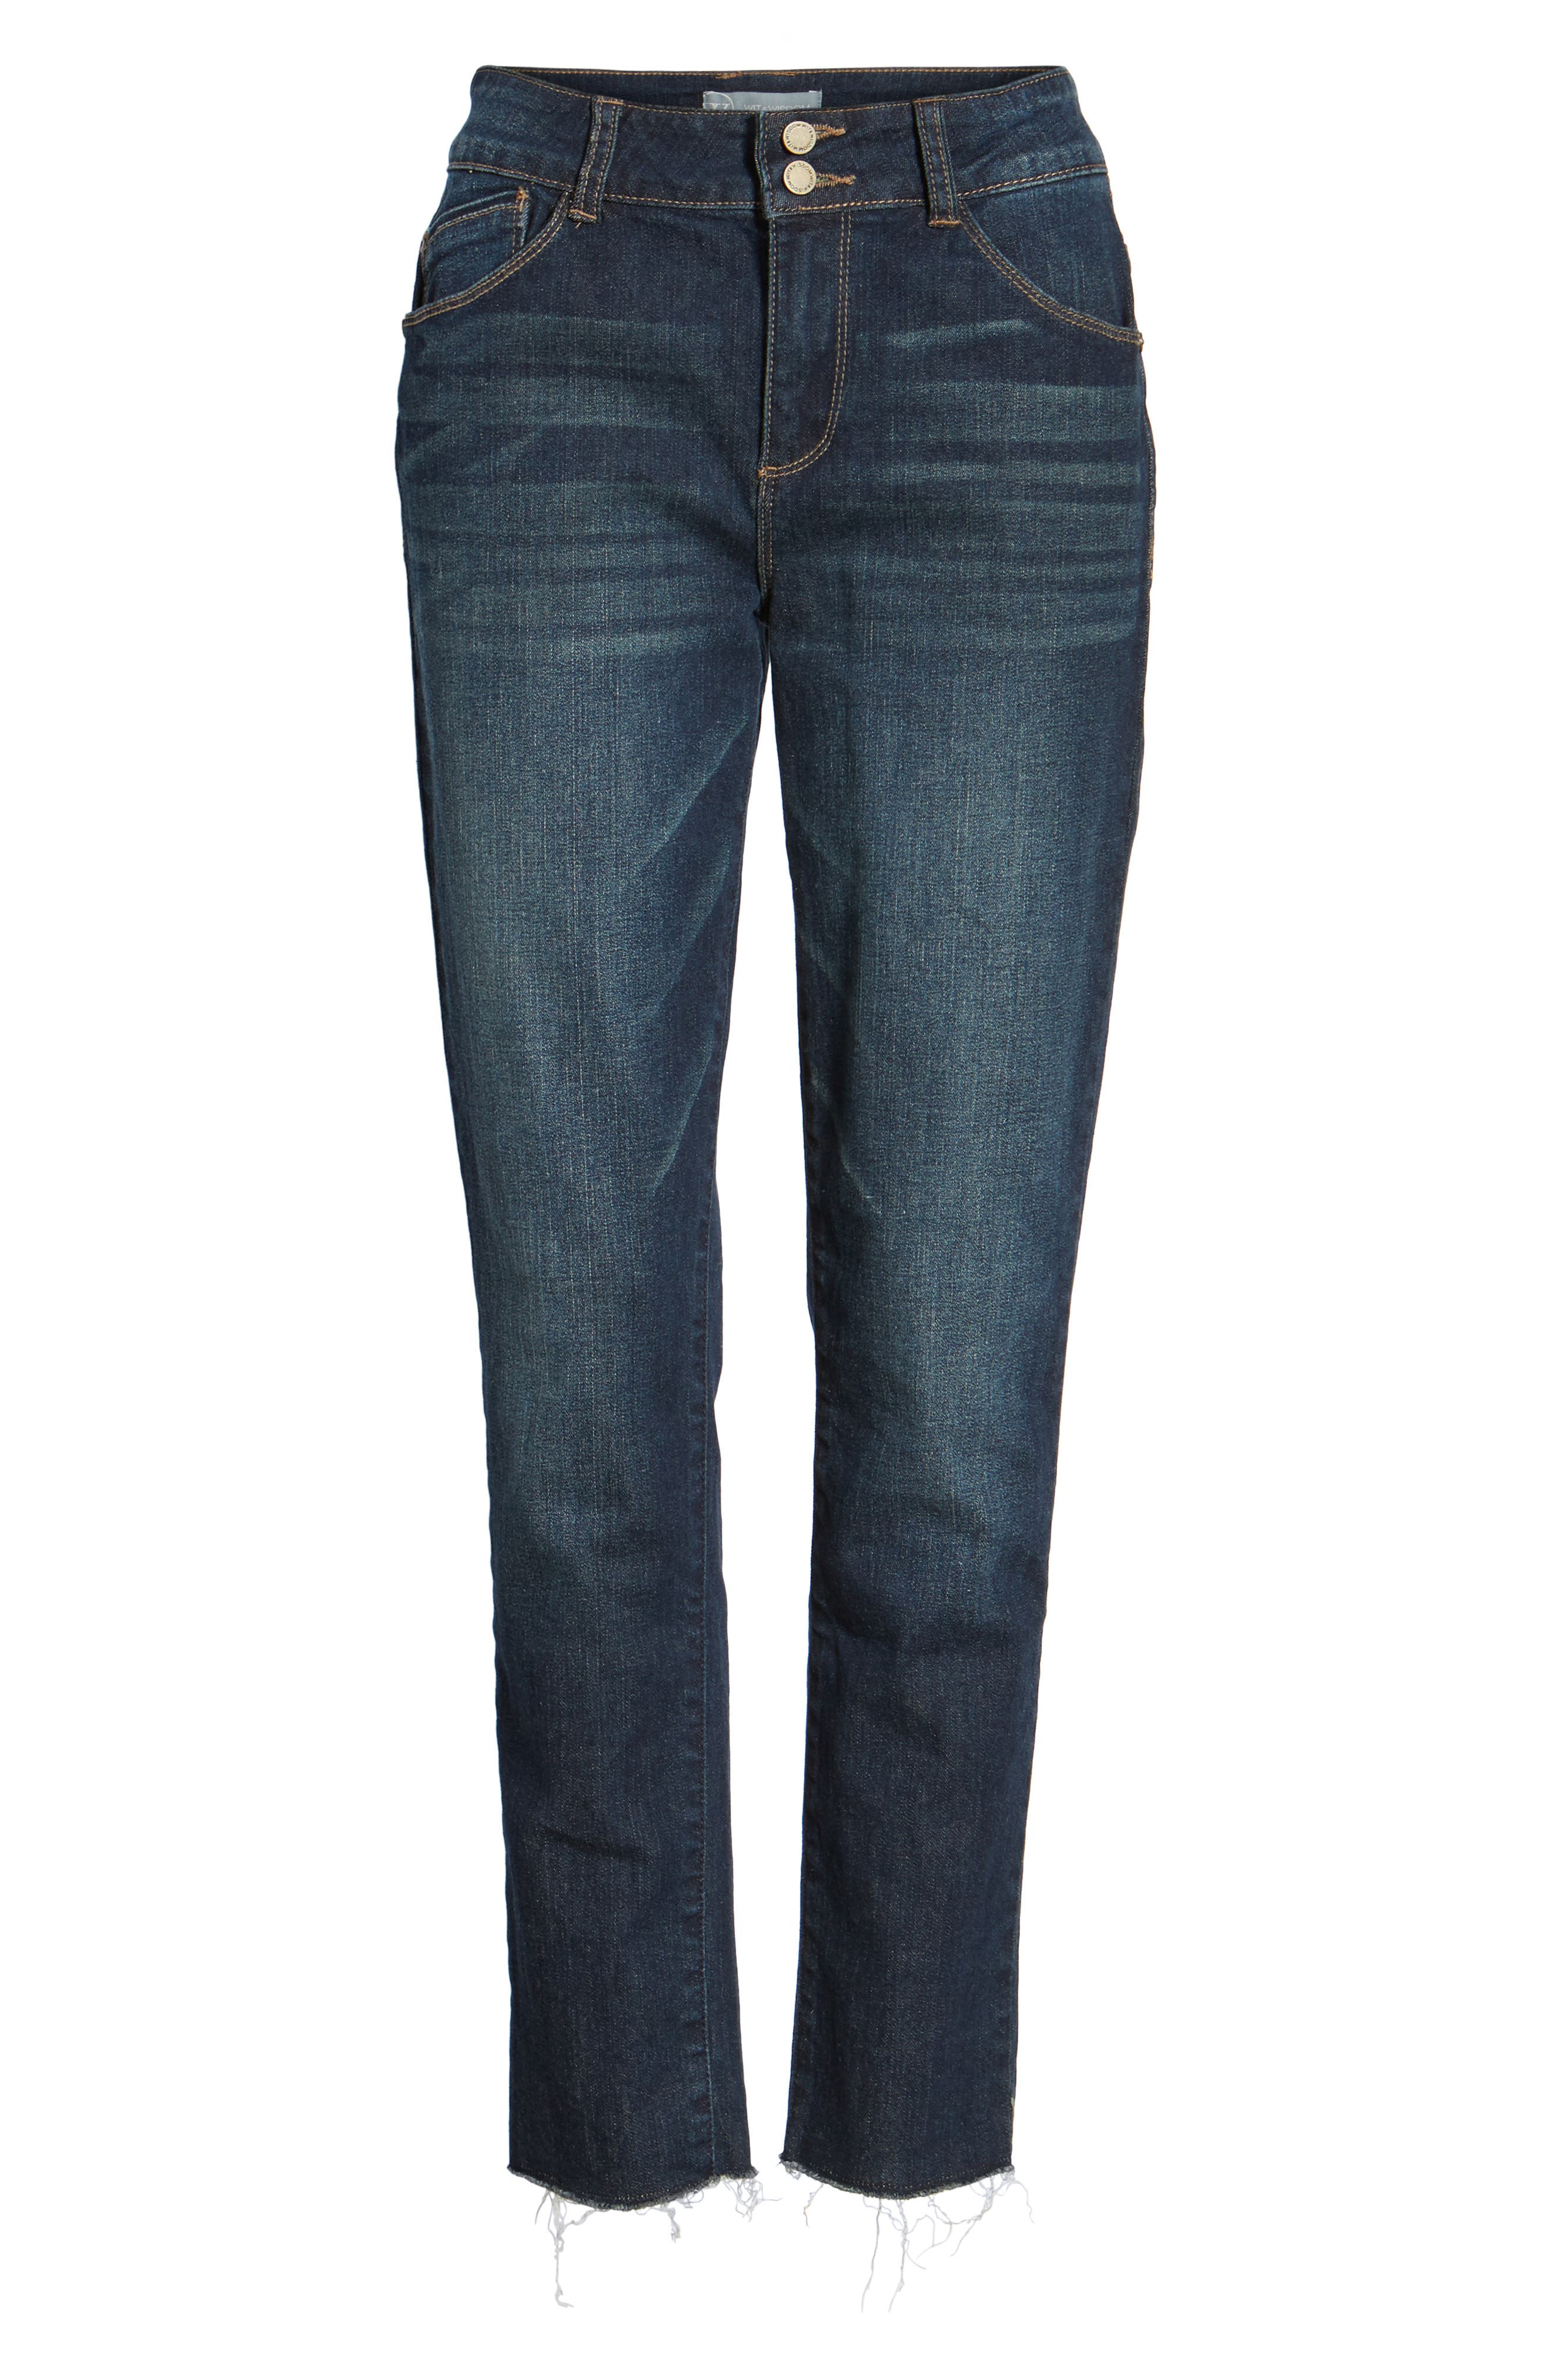 Two-Button High Waist Skinny Jeans,                             Alternate thumbnail 6, color,                             Indigo